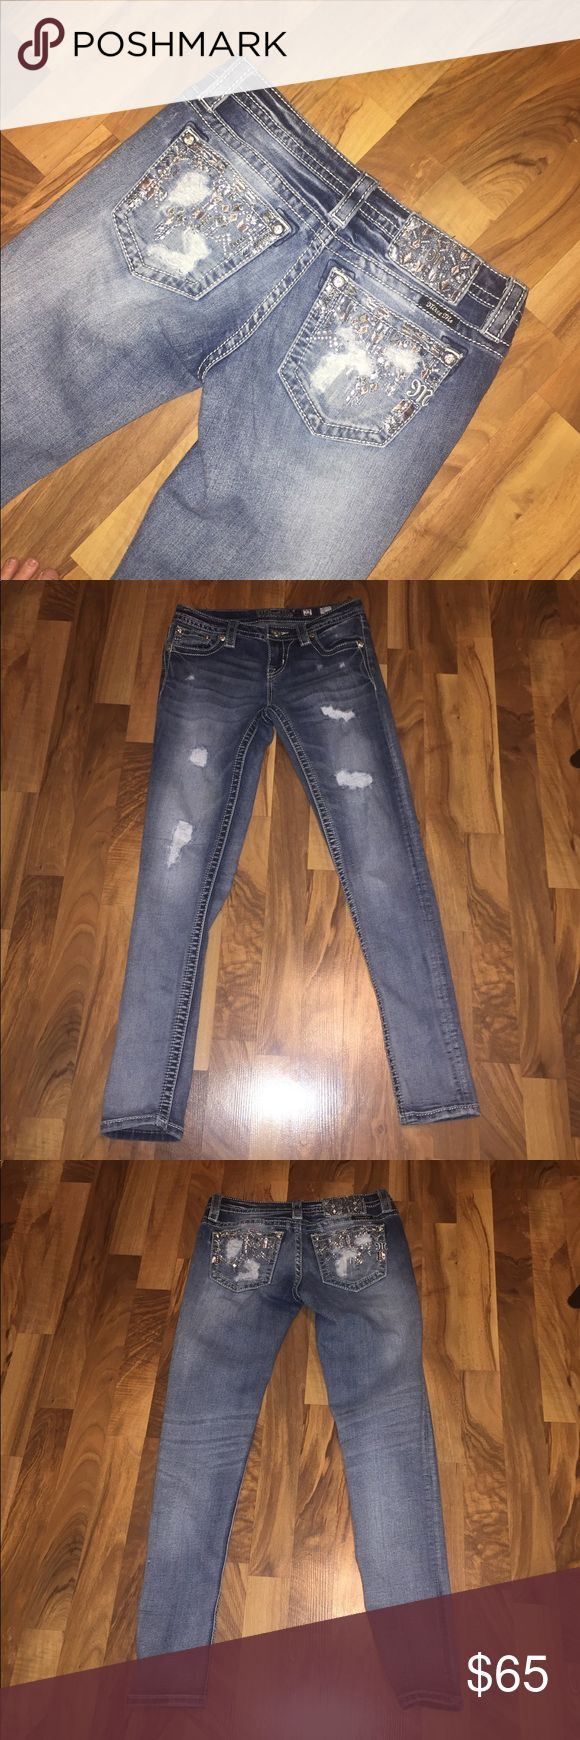 Miss Me Jeans Size 27, Length is a 31. Brand New. Miss Me Jeans Skinny